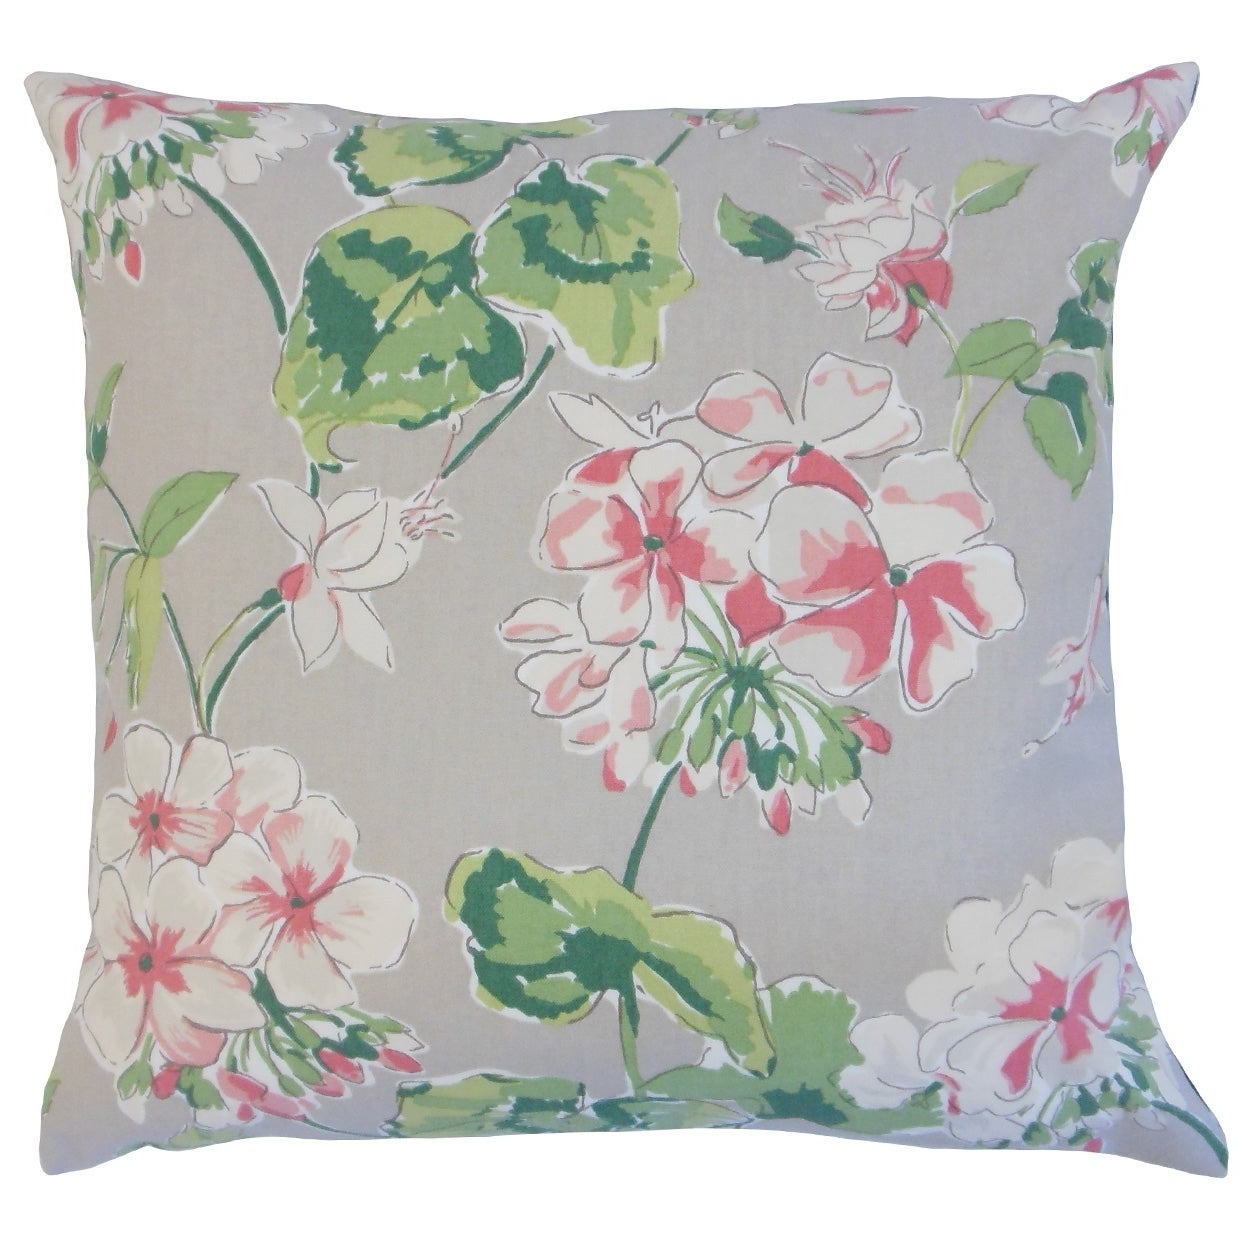 Newest Shop Set Of 2 Kaelin Floral Throw Pillows In Celadon – Free Shipping Regarding Kaelin 5 Piece Dining Sets (View 24 of 25)